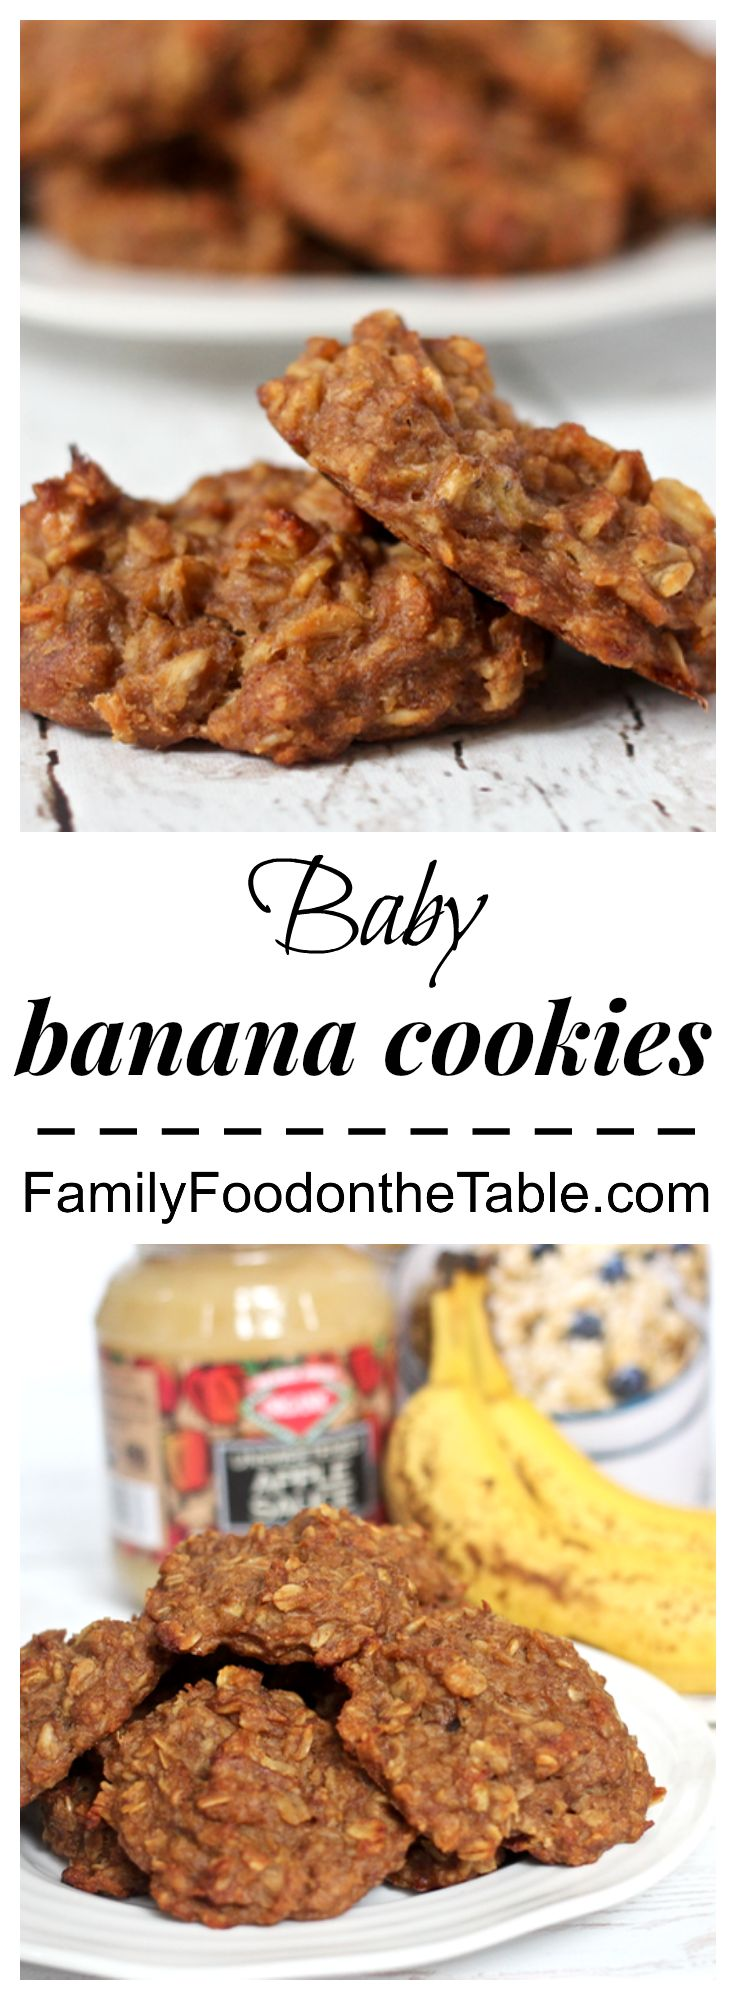 Baby banana cookies - 5 wholesome ingredients, no sweeteners | Family Food on the Table